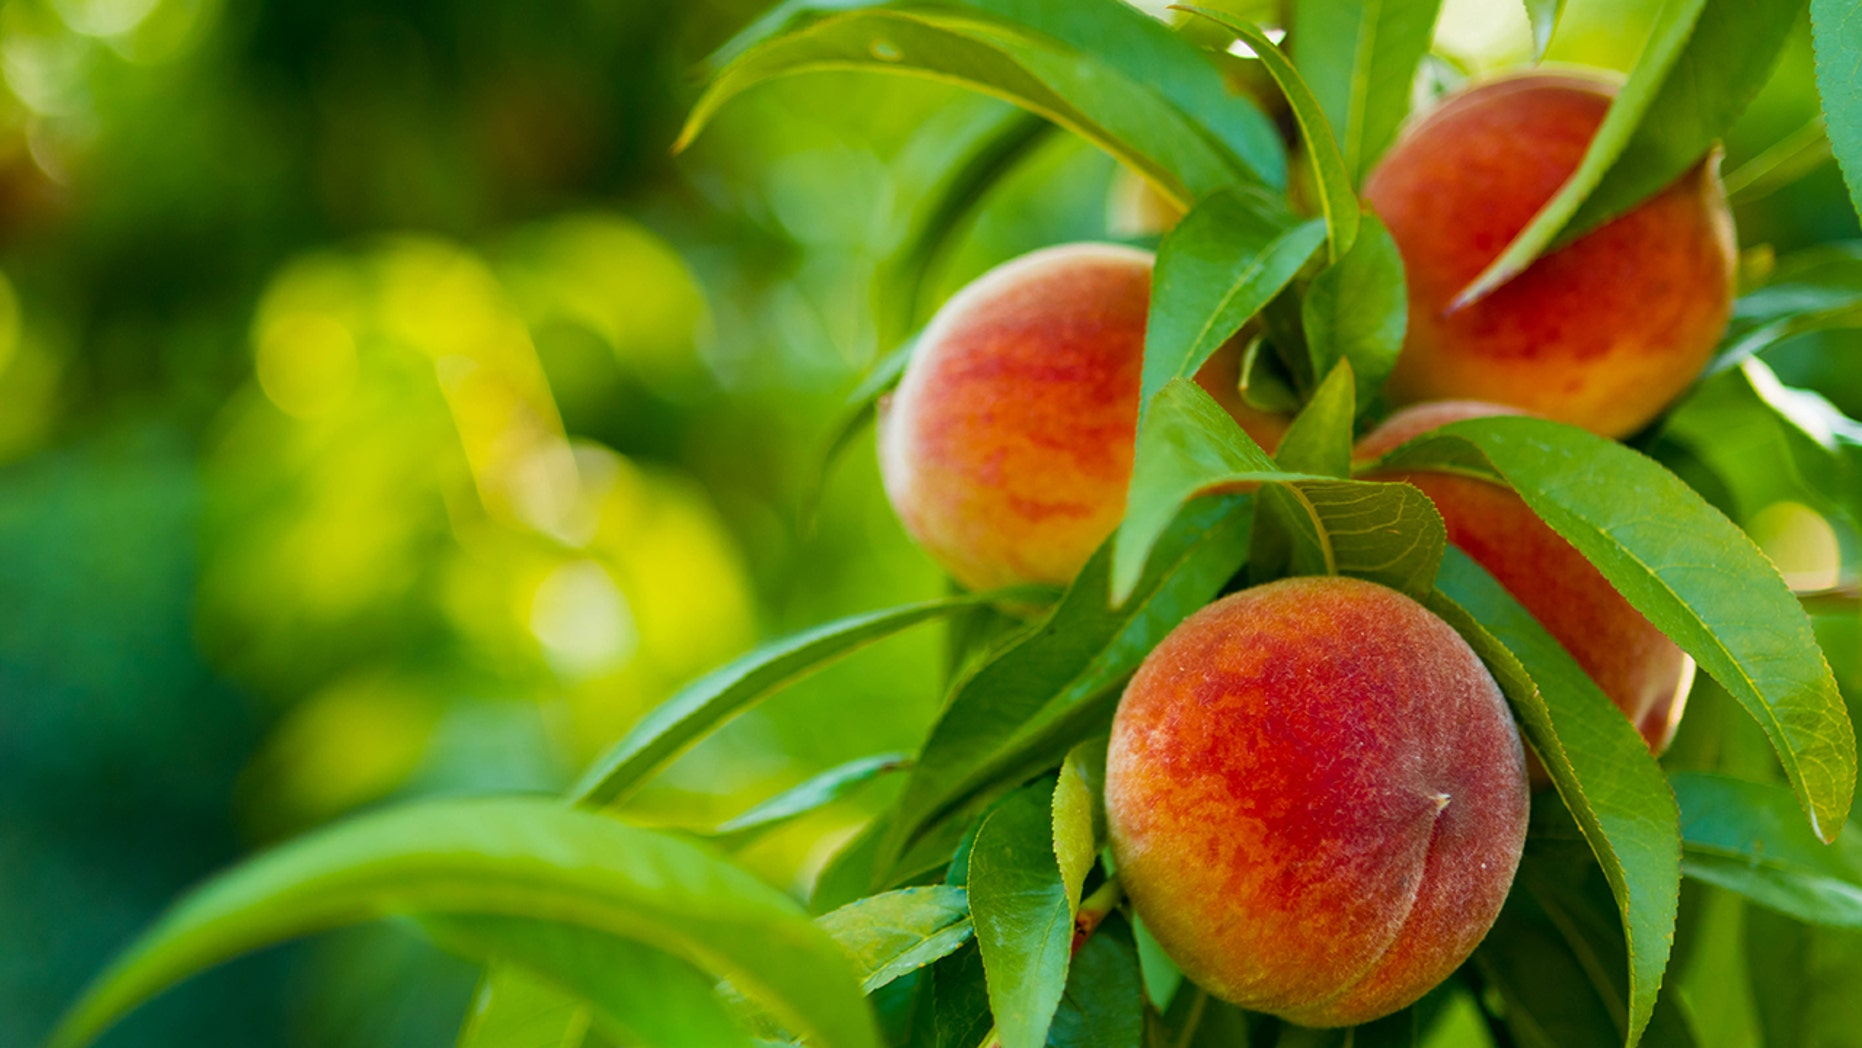 The fruit has potentially been infected with Listeria monocytogenes.